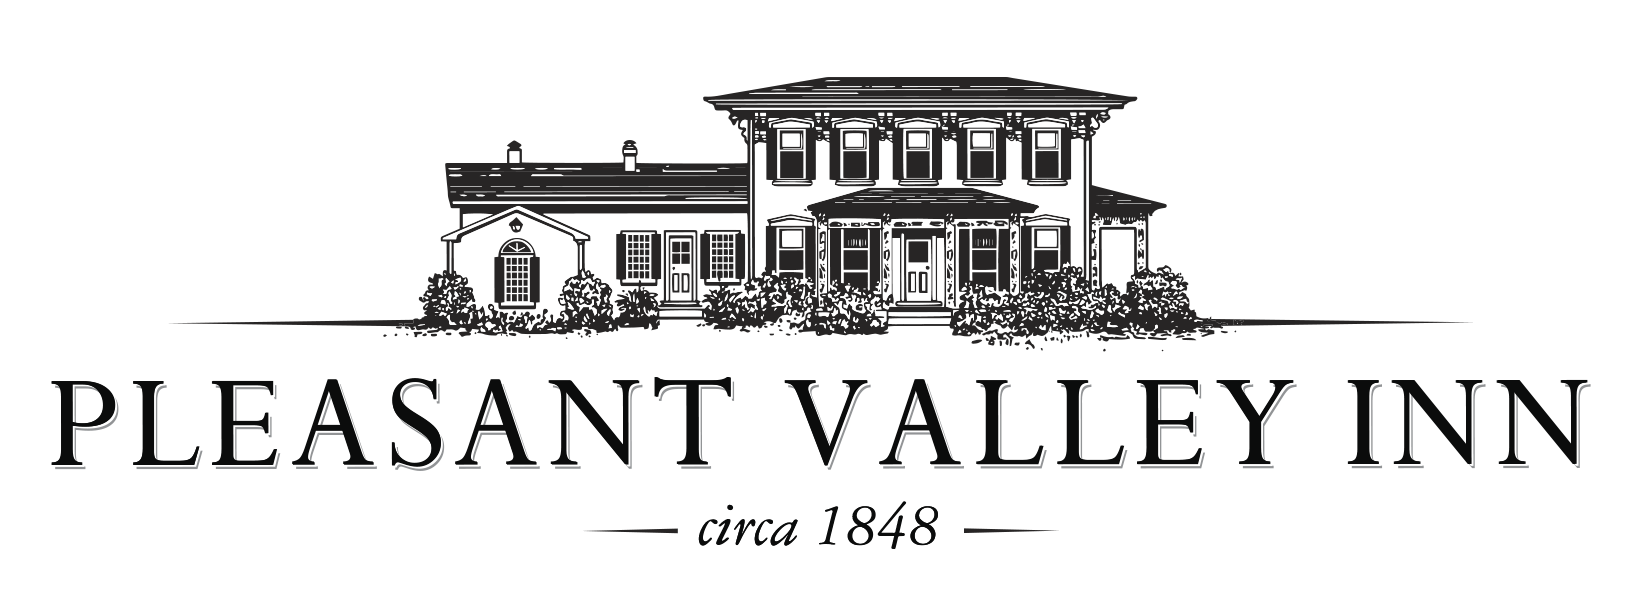 Pleasant Valley Inn - Bath, NY